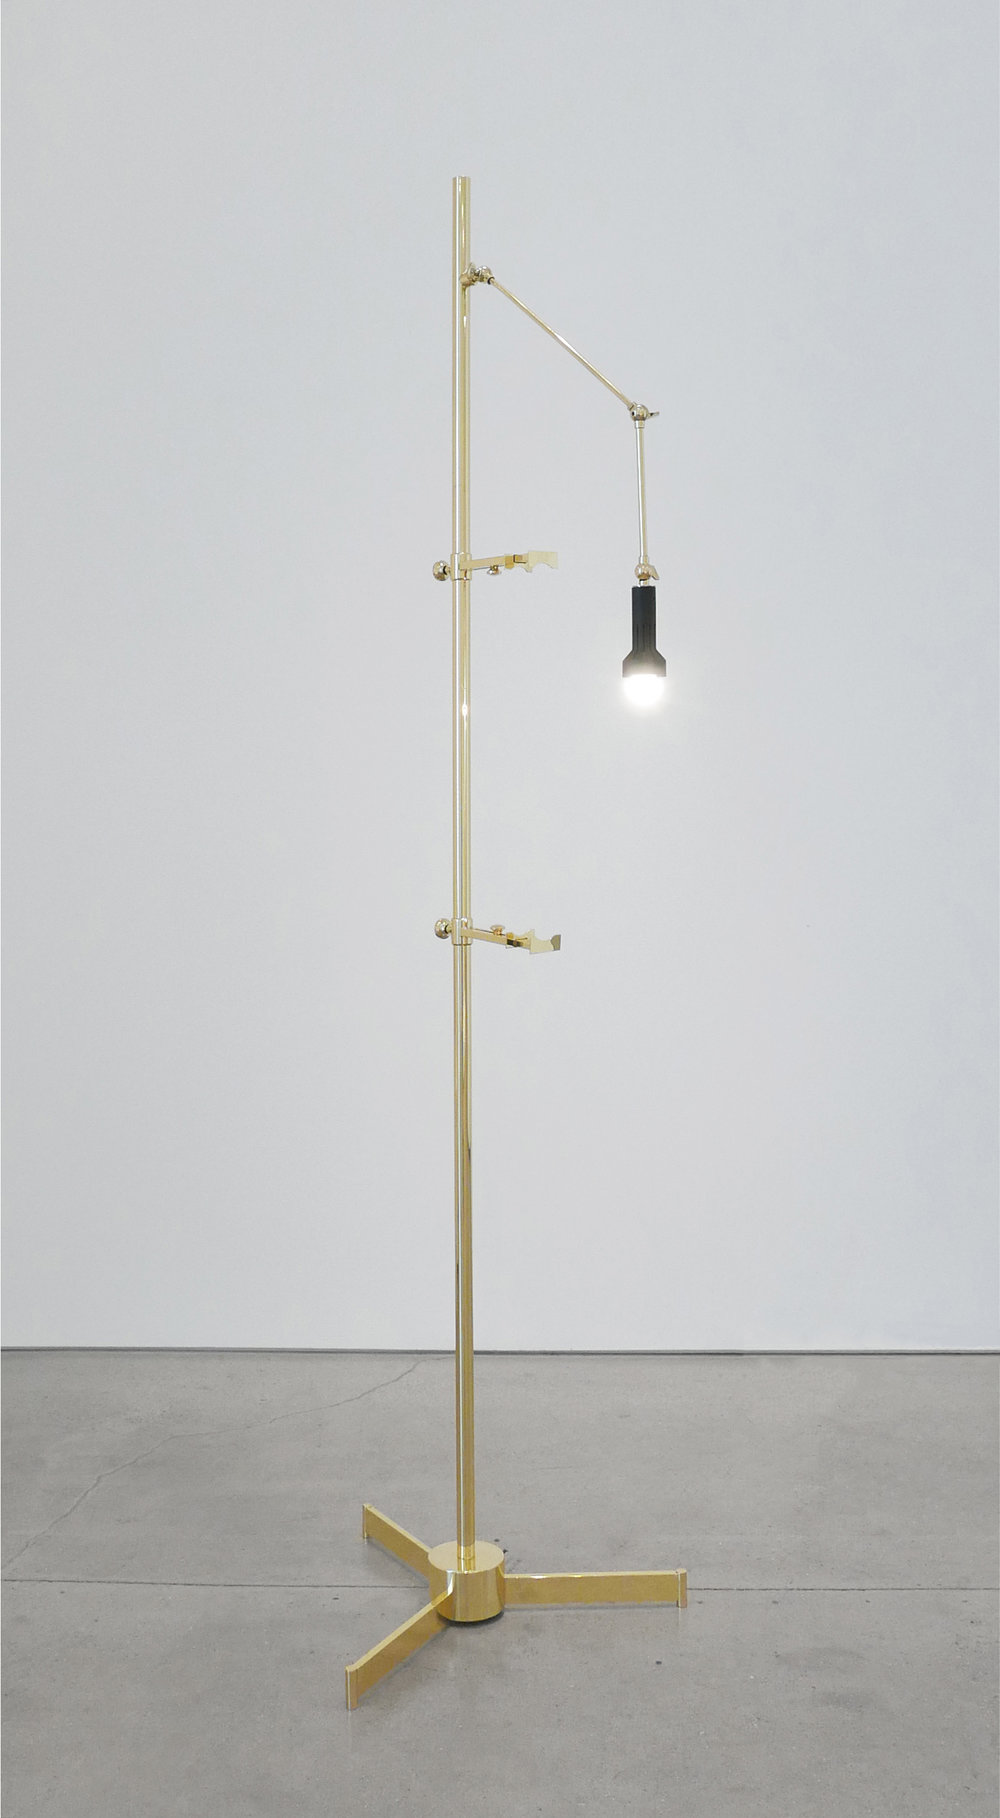 Angelo Lelli Easel Lamp for Arredoluce, c. 1950-1959, Brass, 82 H x 22.5 W x 33 D inches_1.jpg